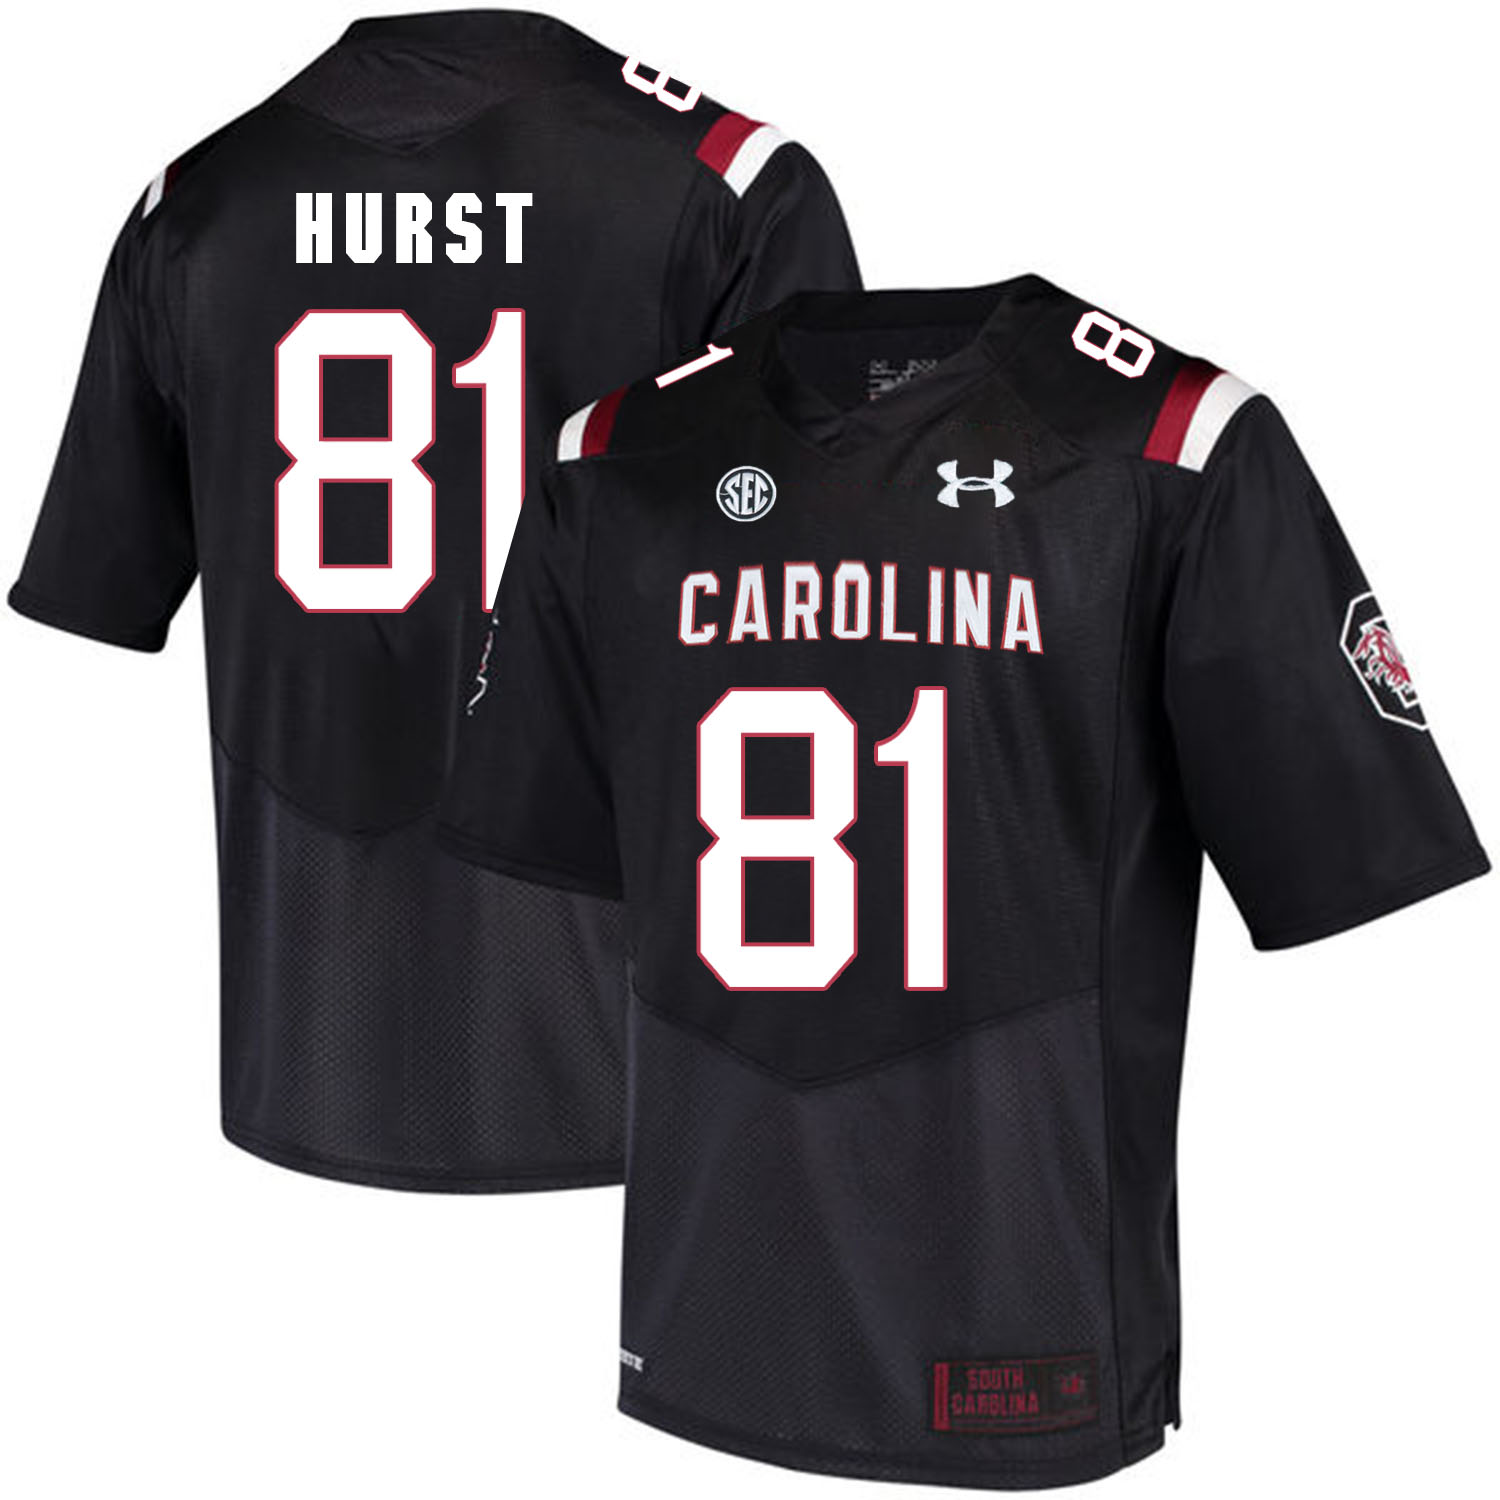 South Carolina Gamecocks 81 Hayden Hurst Black College Football Jersey